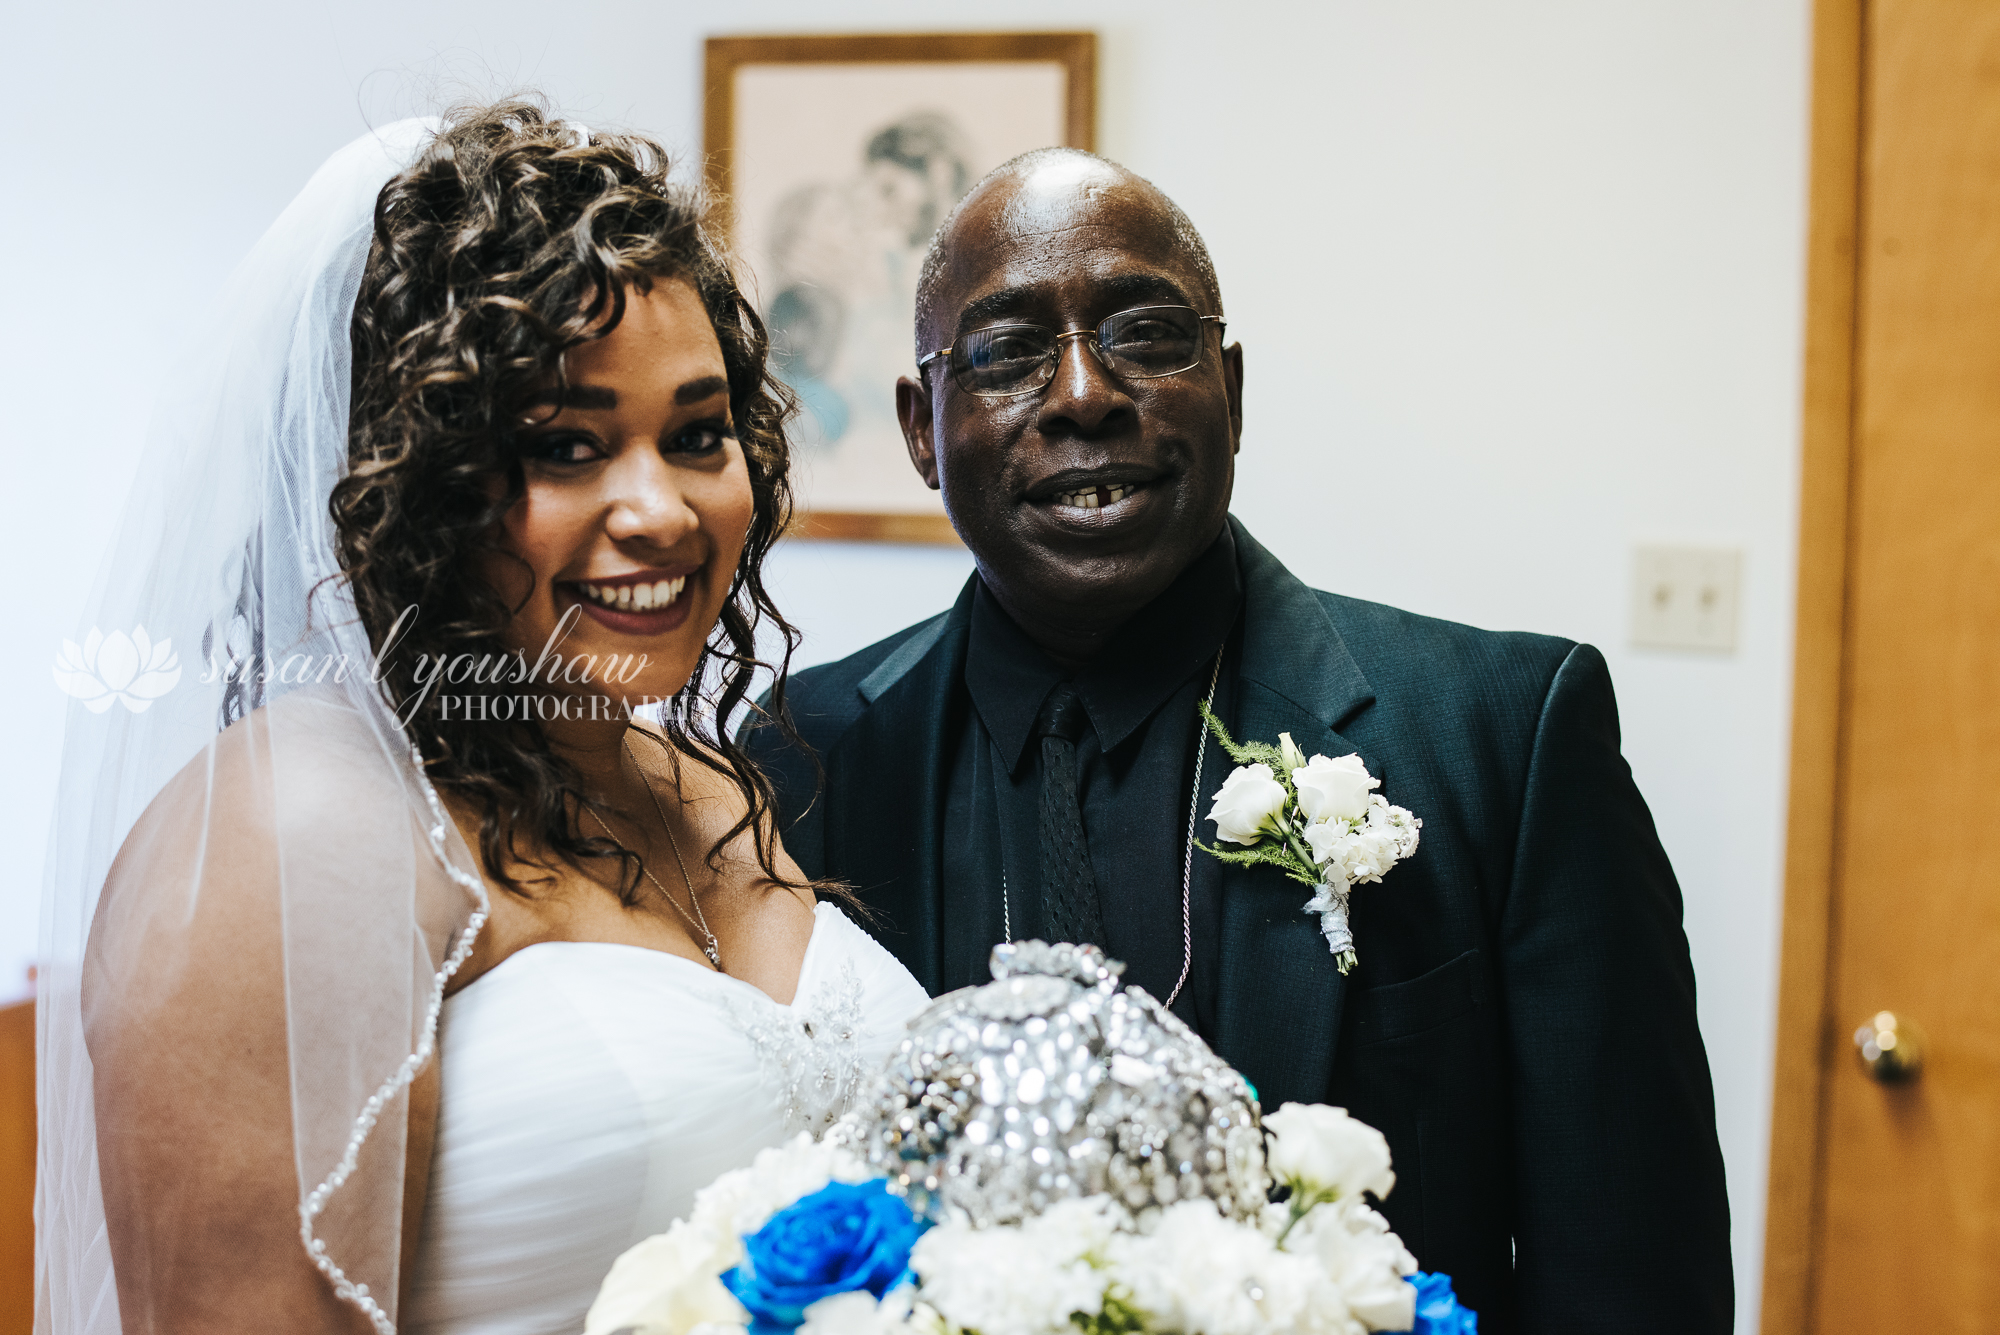 Katelyn and Wes Wedding Photos 07-13-2019 SLY Photography-35.jpg